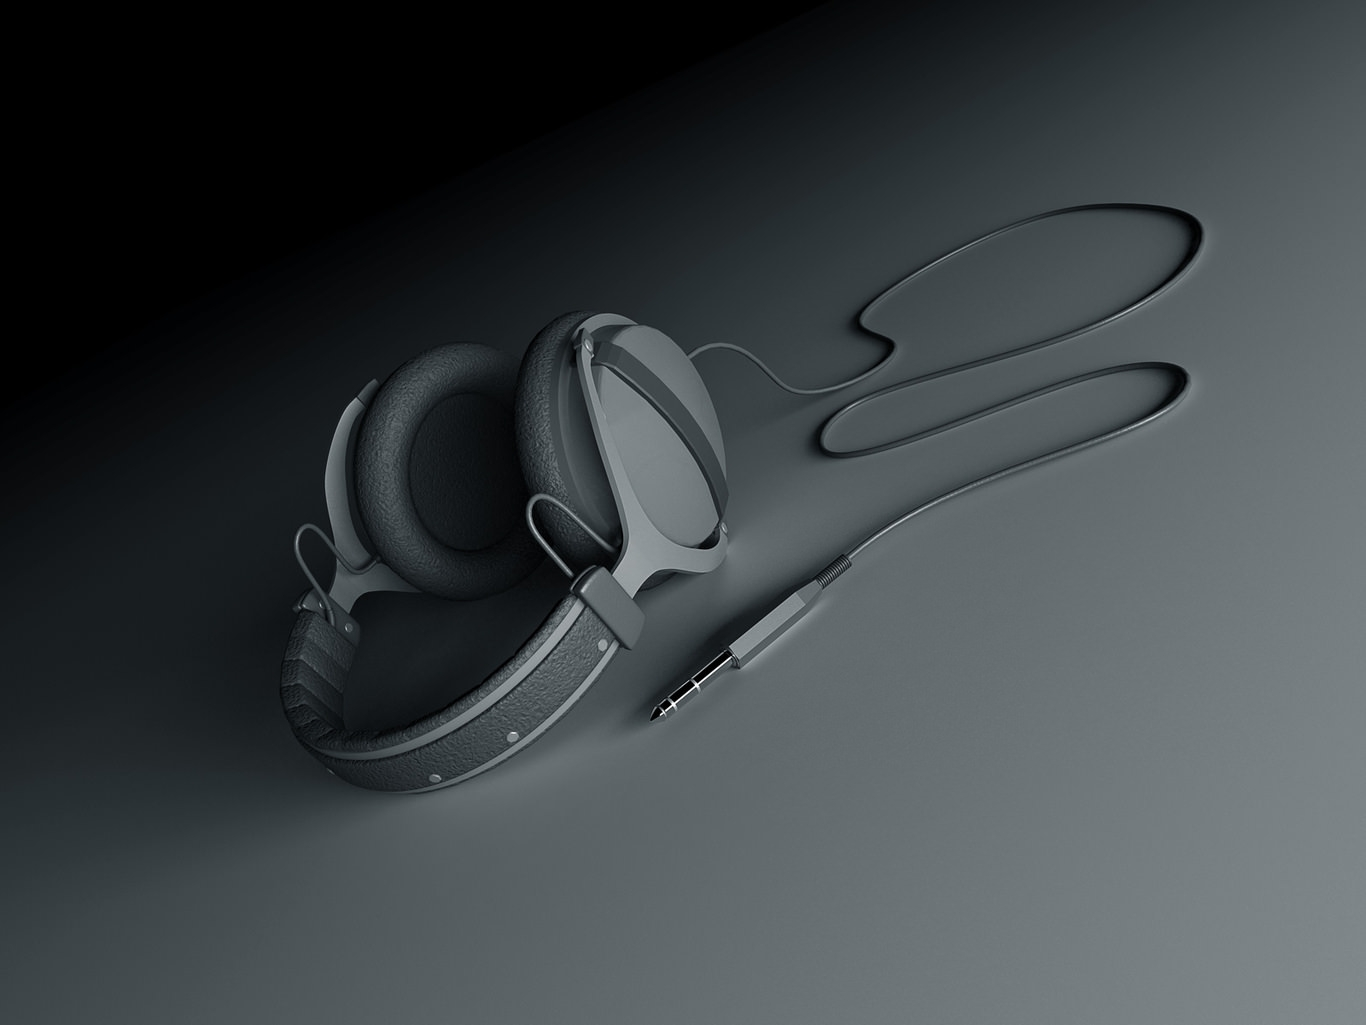 Must see Wallpaper Music Headphone - Matte-Headphones-Wallpaper  You Should Have_31434.jpg